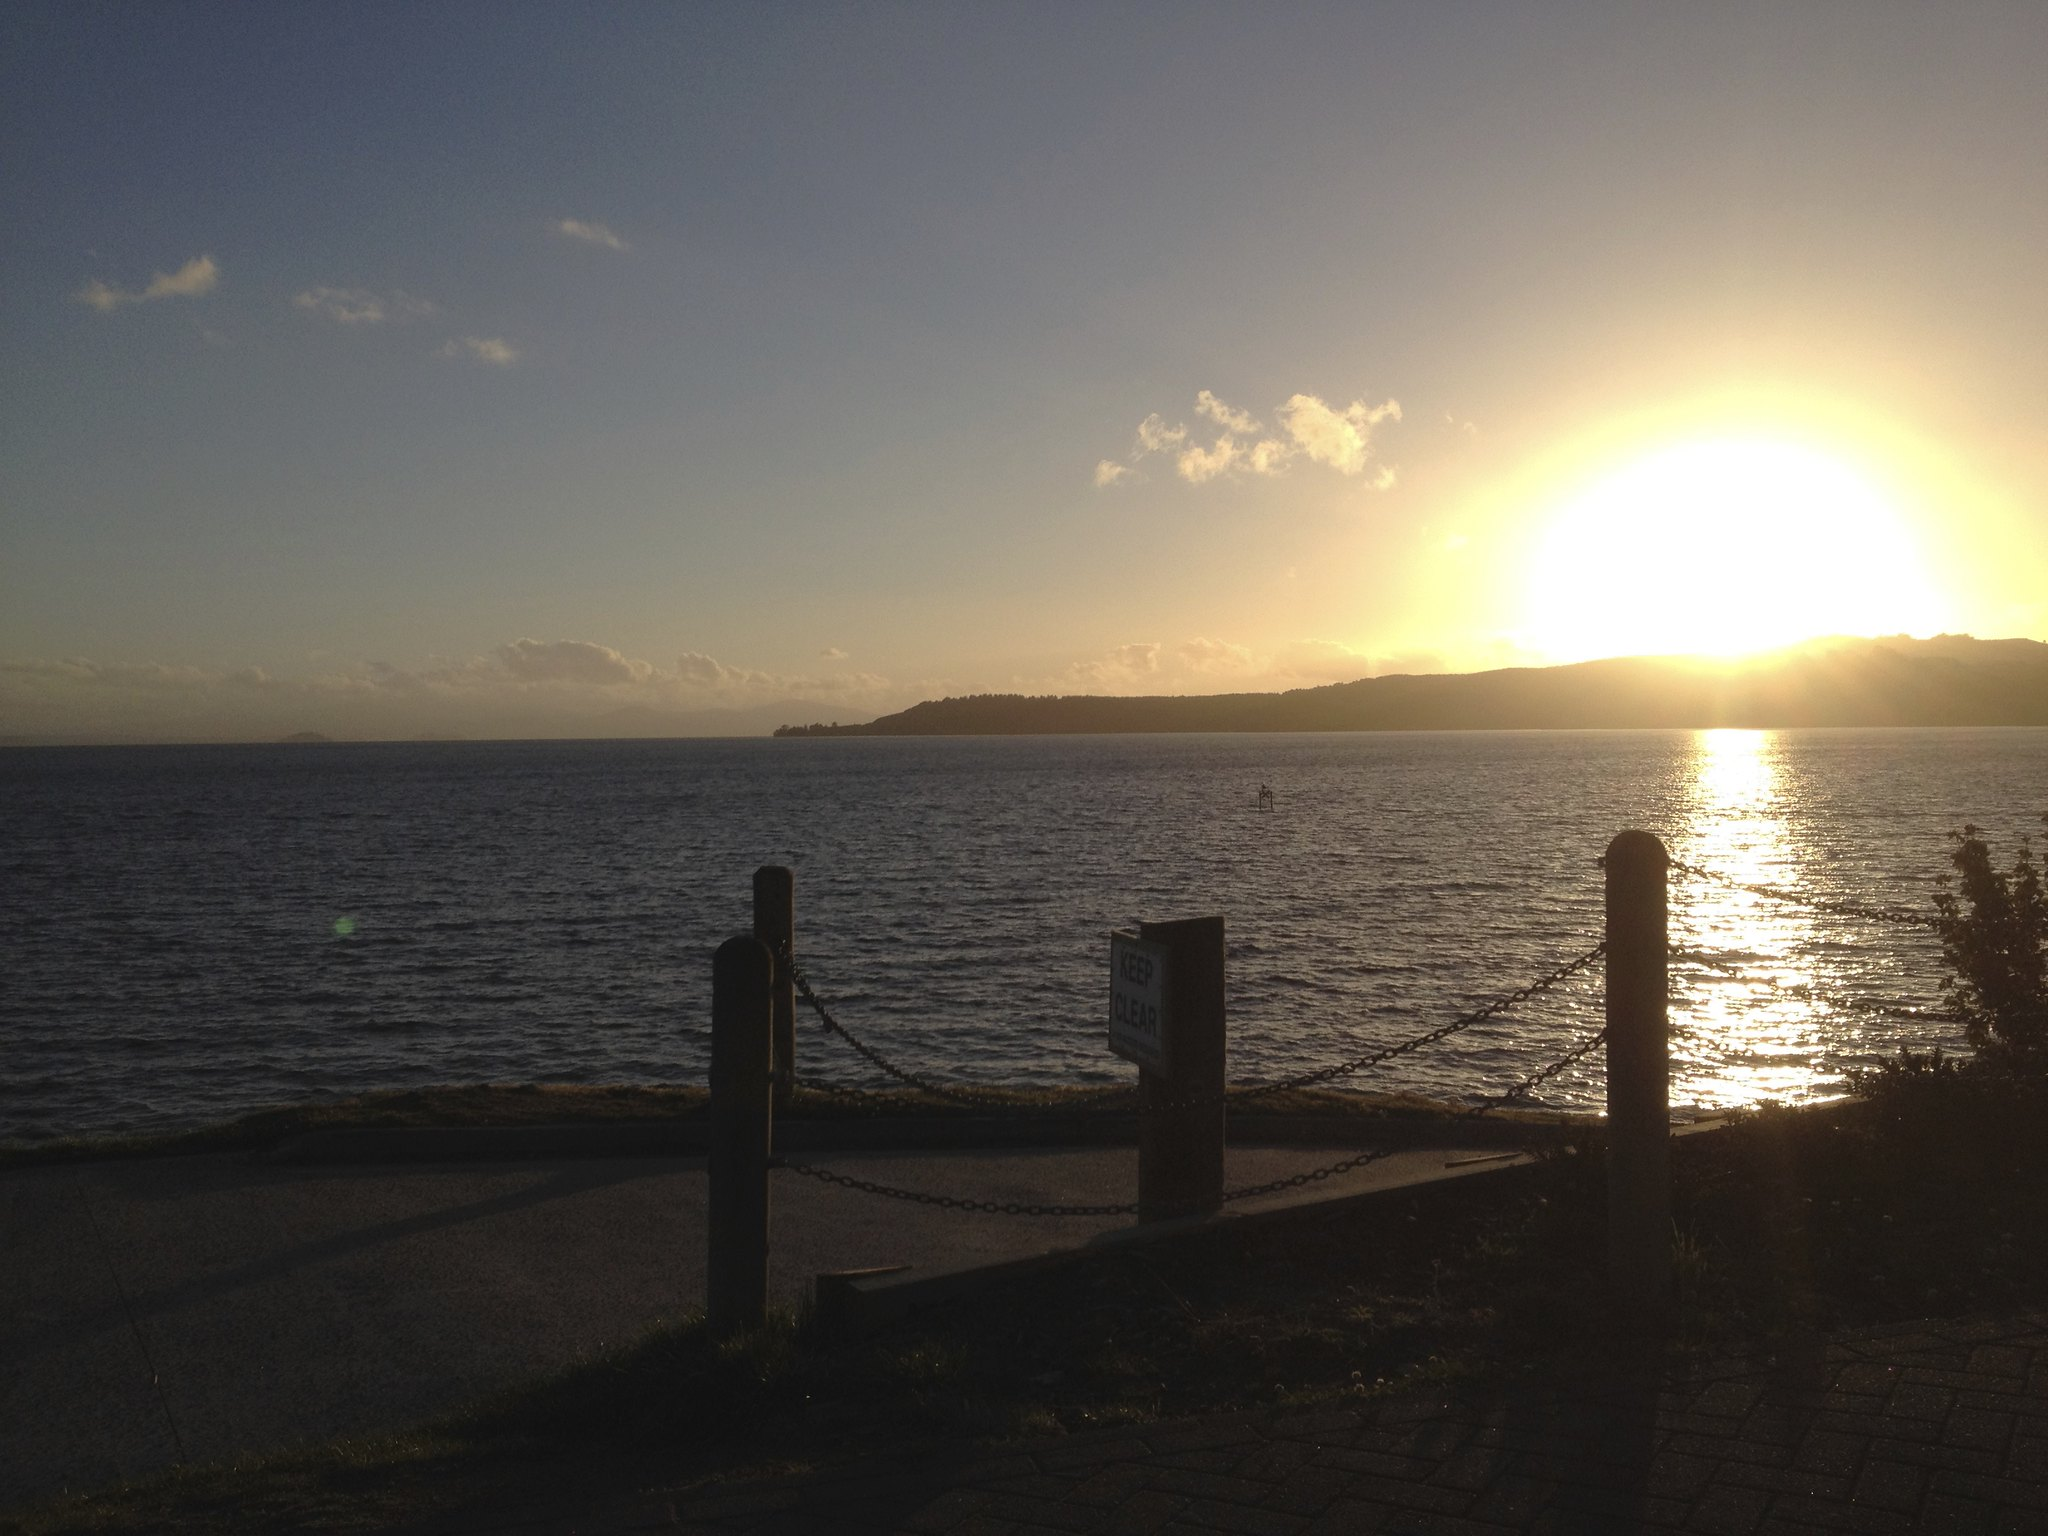 Sunset, Lake Taupo